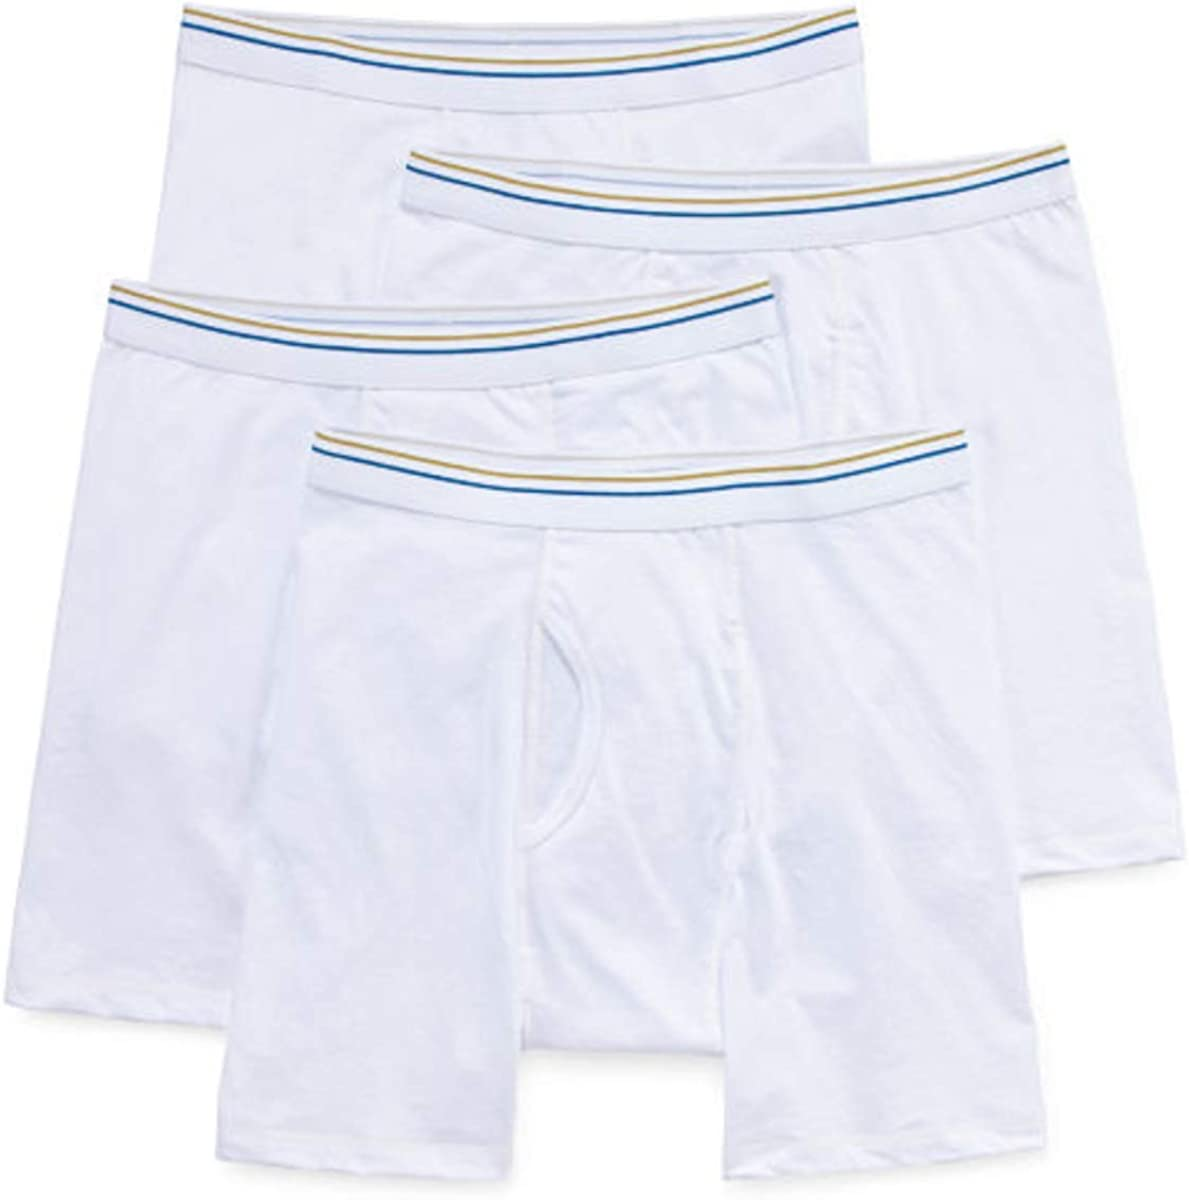 Stafford 4 Pair Dry and Cool Blended Men's Boxer Briefs